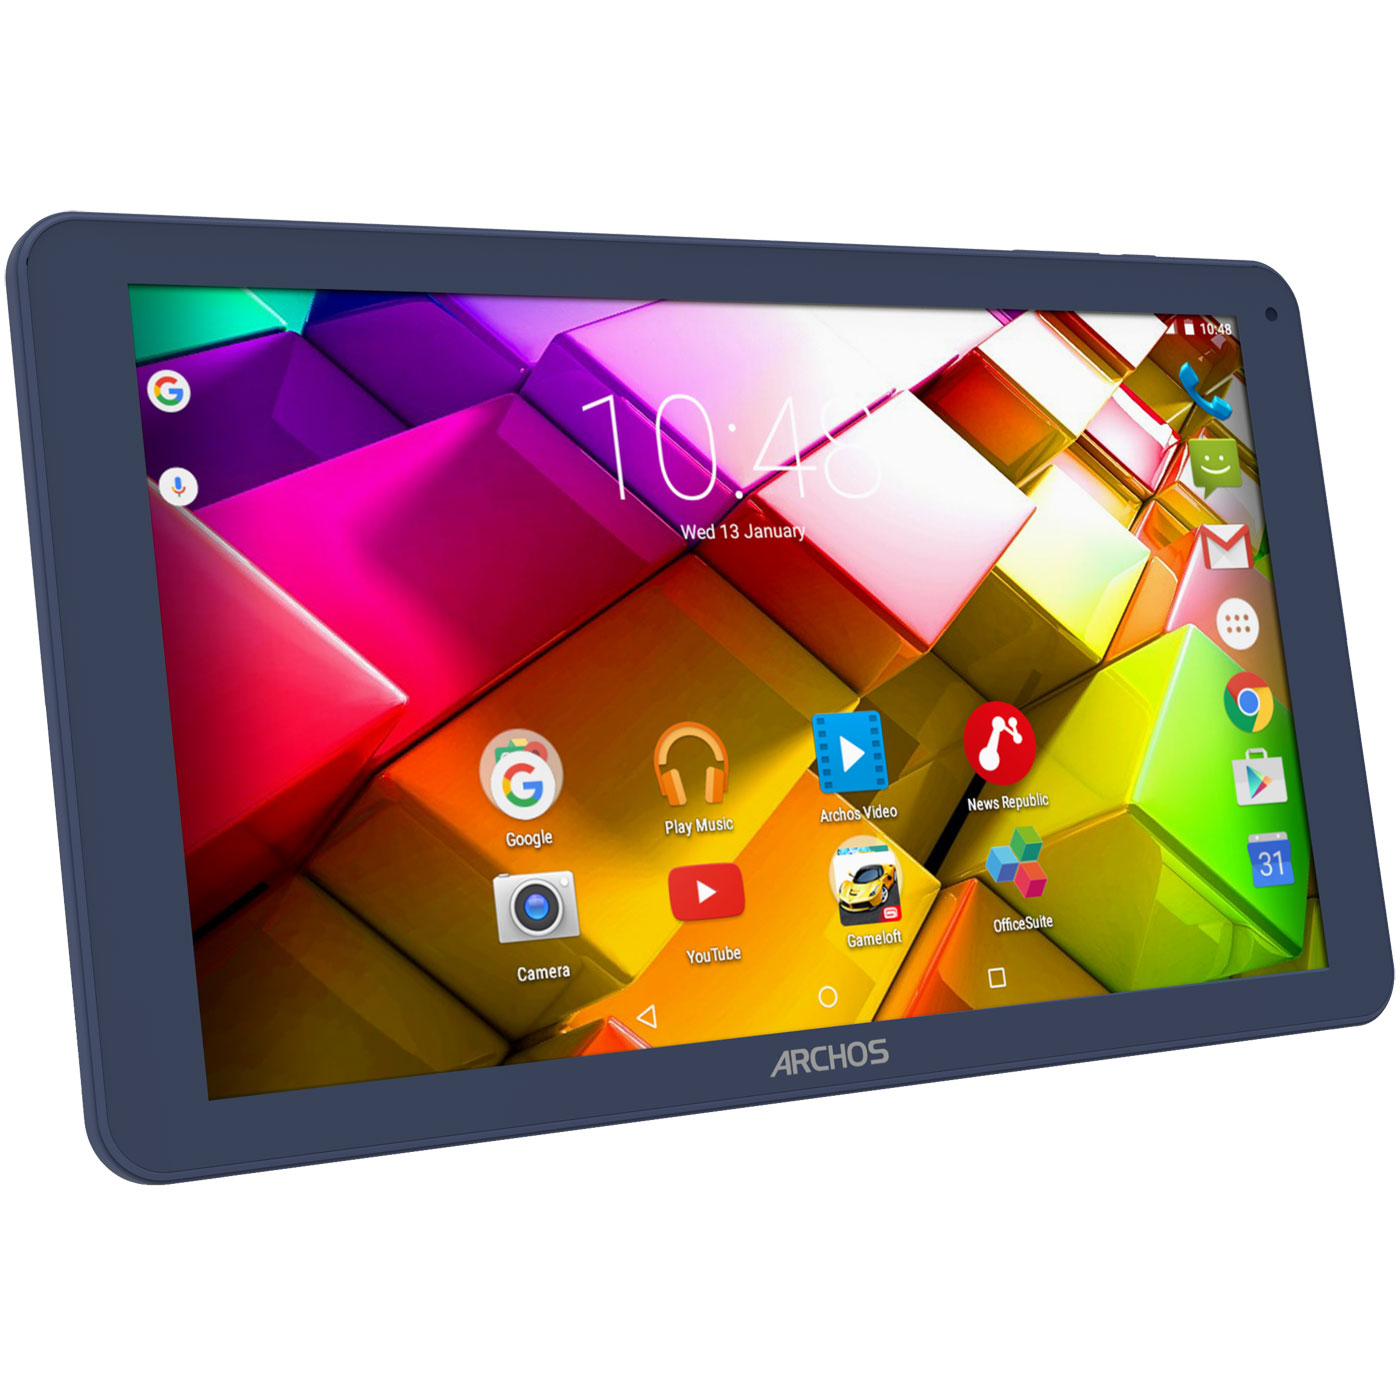 "Tablette tactile Archos 101c Copper 16 Go Tablette Internet 3G+ - ARM Cortex A53 1.3 GHz 1 Go 16 Go 10.1"" LED tactile Wi-Fi/Bluetooth/Webcam Android 5.1"